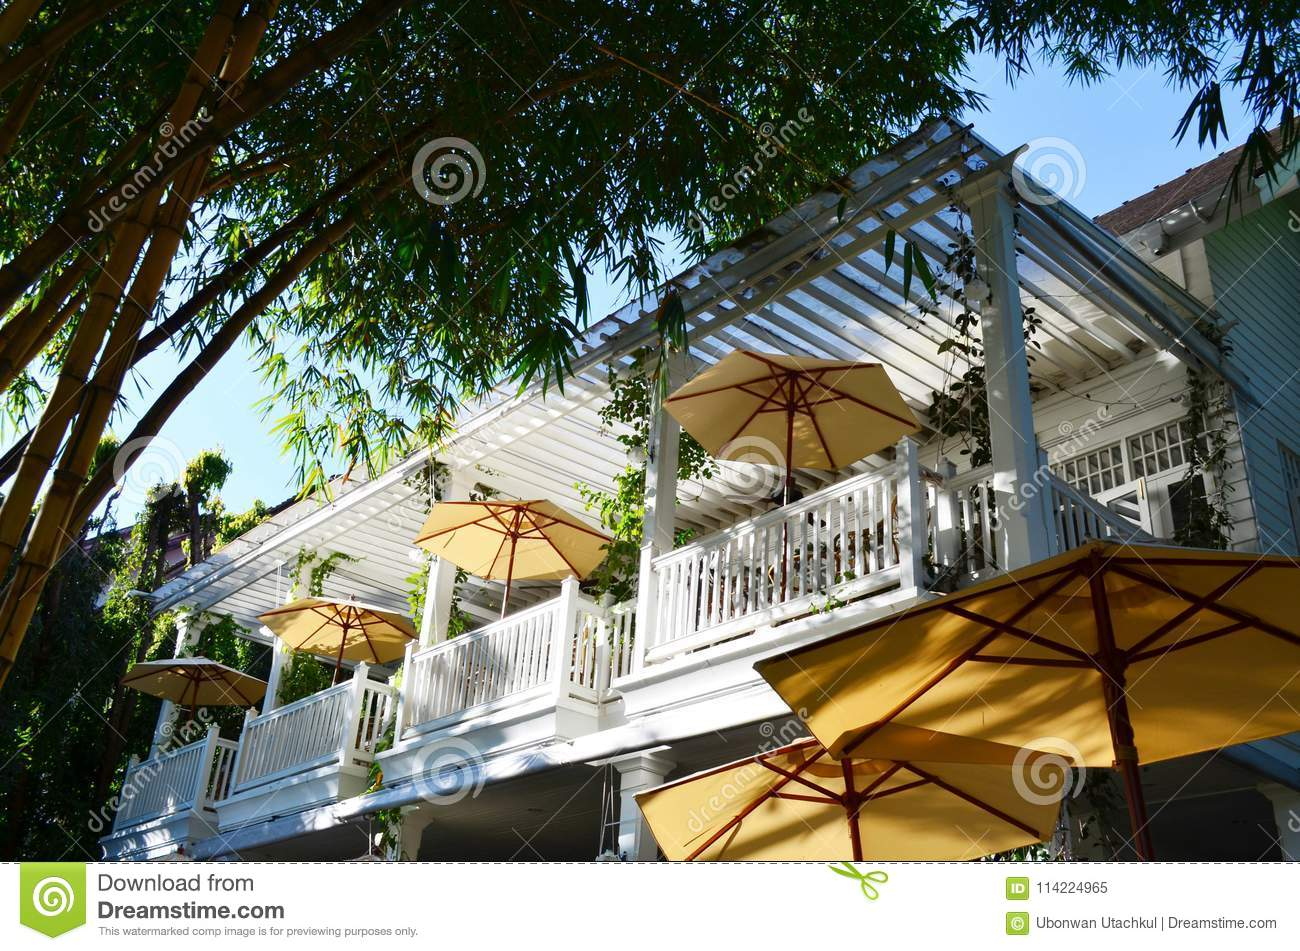 Beautiful White Balcony Of Restaurant With Yellow Outdoor Umbrella And Bamboo Under Sun Light Architecture Concept Stock Image Image Of Fence Vintage 114224965